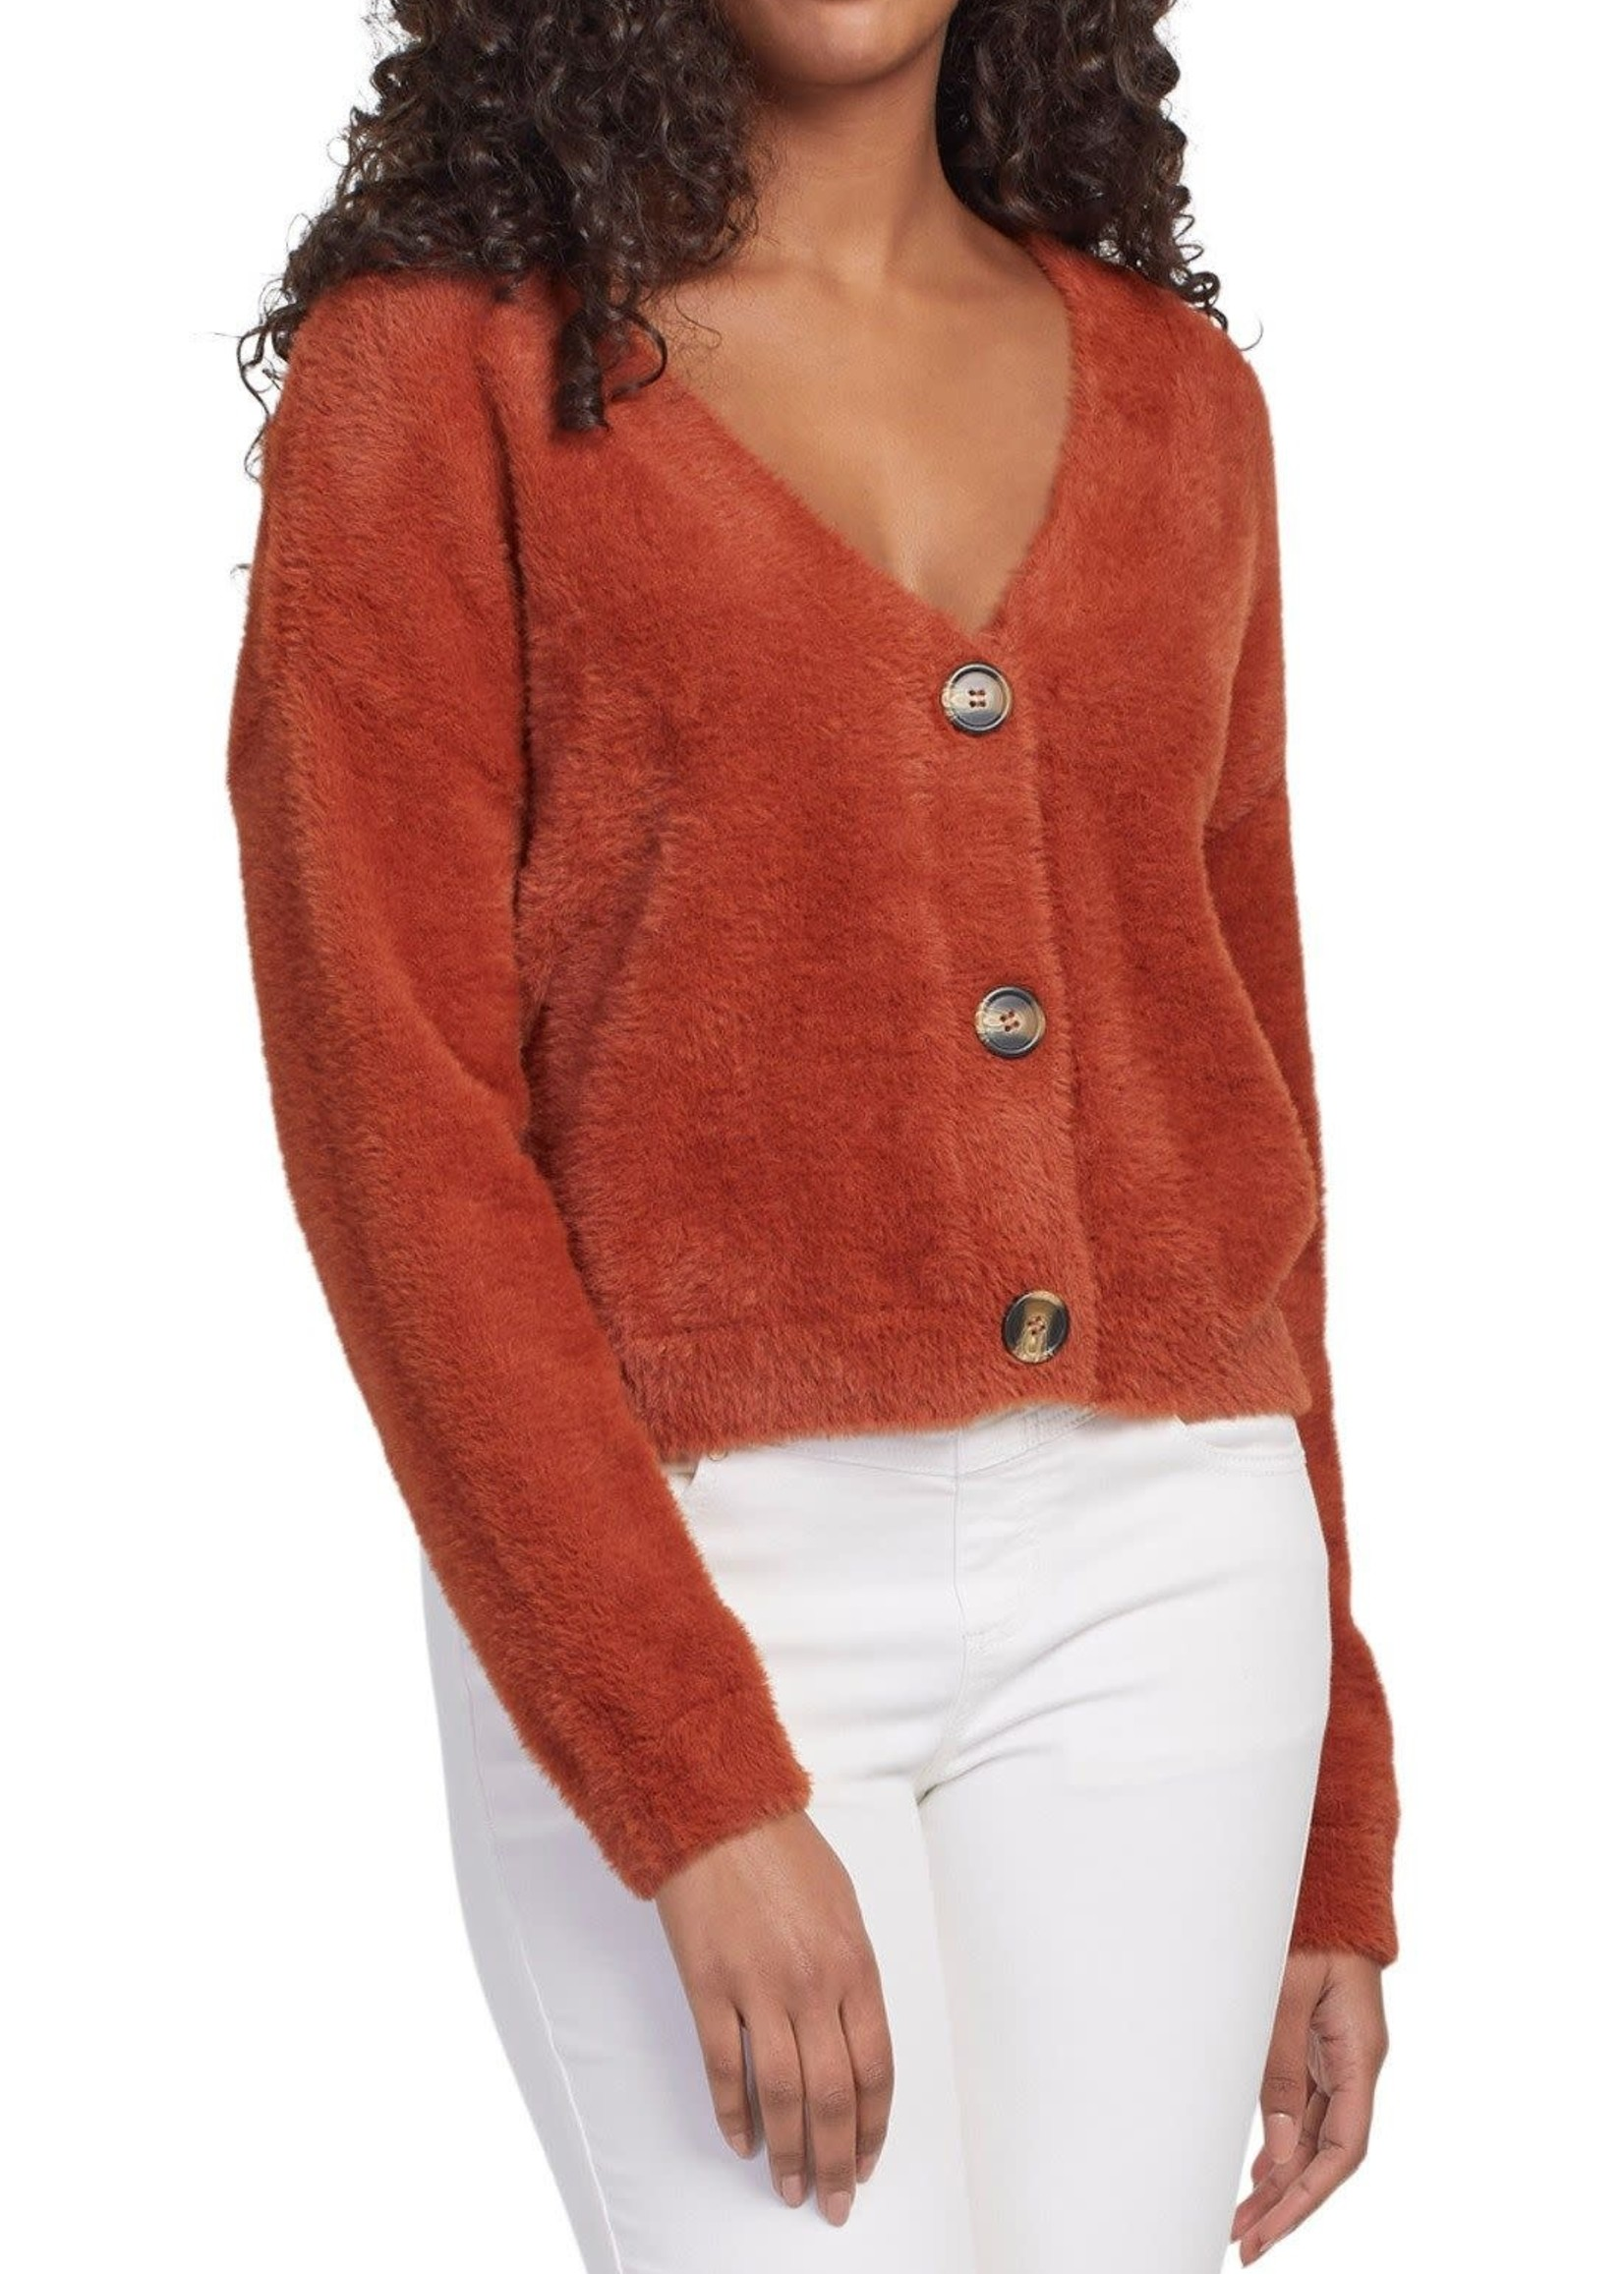 Tribal Tribal L/S Crop Button Front Sweater Cardigan